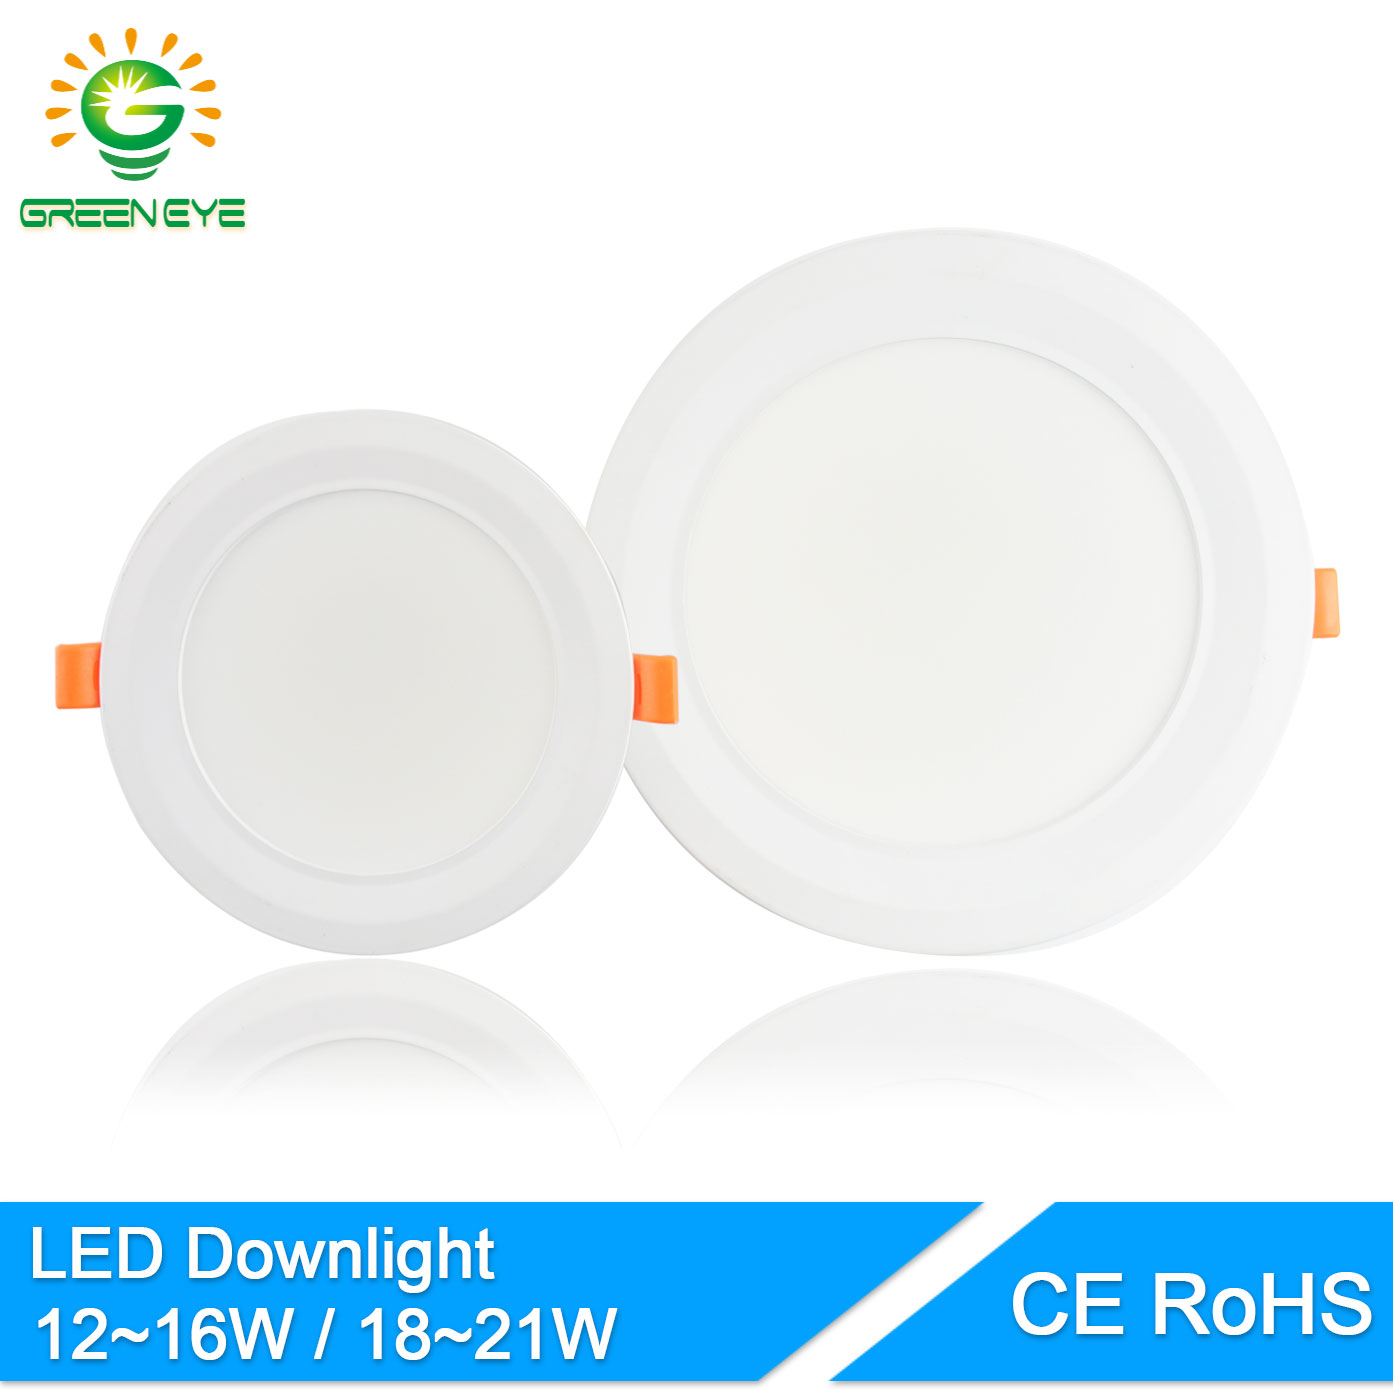 GreenEye Ultra Bright 12w 18w 6w / 7,5 inch LED LED Downlight 220v Spot Plafon LED Lămpi în jos Lămpi Lumina cald alb